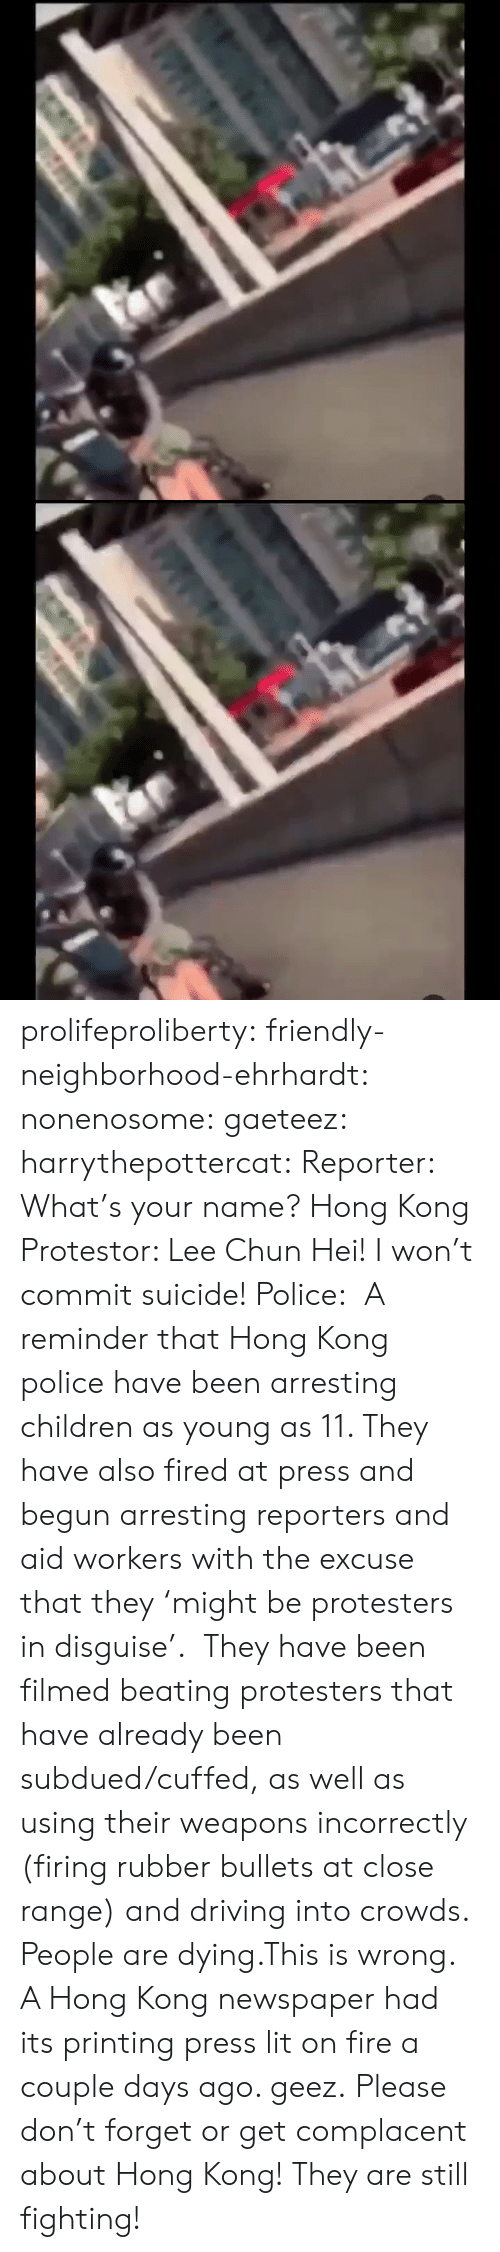 Uk News: के.  ॥ल prolifeproliberty:  friendly-neighborhood-ehrhardt:  nonenosome:  gaeteez:   harrythepottercat:  Reporter: What's your name? Hong Kong Protestor: Lee Chun Hei! I won't commit suicide! Police:    A reminder that Hong Kong police have been arresting children as young as 11. They have also fired at press and begun arresting reporters and aid workers with the excuse that they 'might be protesters in disguise'.  They have been filmed beating protesters that have already been subdued/cuffed, as well as using their weapons incorrectly (firing rubber bullets at close range) and driving into crowds.  People are dying.This is wrong.    A Hong Kong newspaper had its printing press lit on fire a couple days ago.   geez.   Please don't forget or get complacent about Hong Kong! They are still fighting!